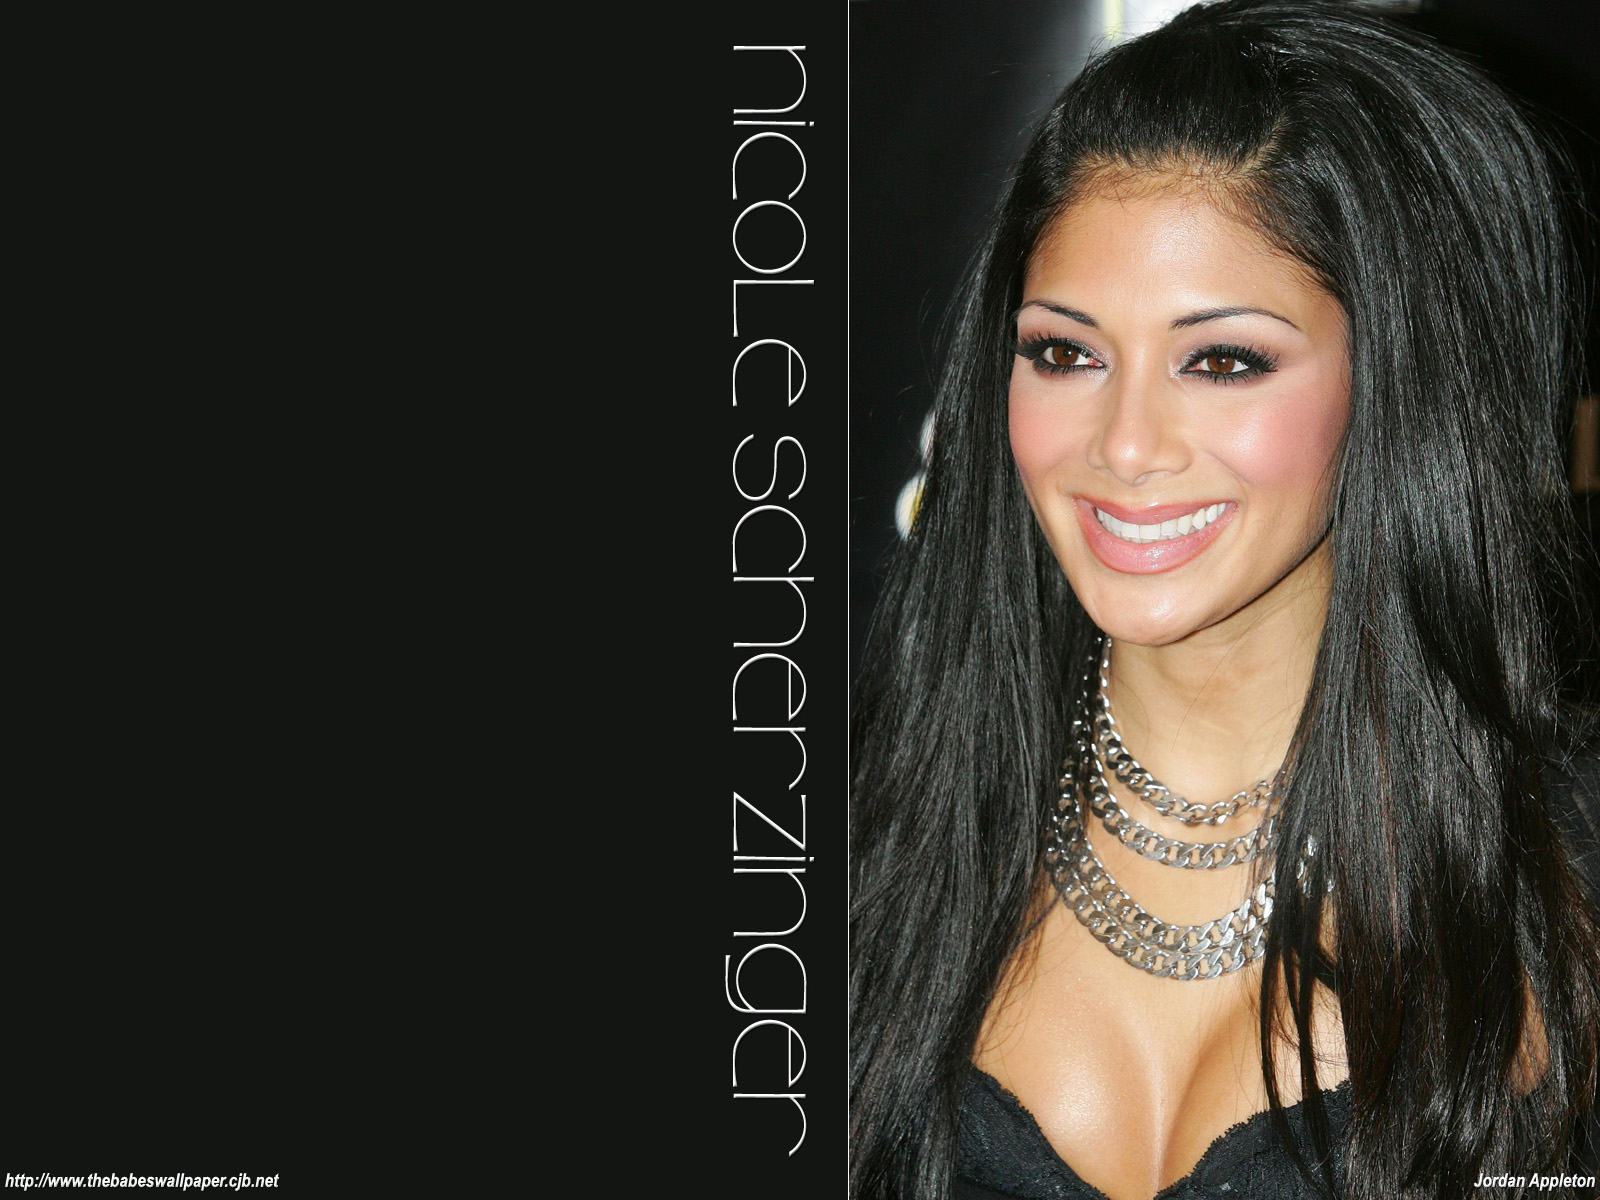 You are viewing the Nicole Scherzinger wallpaper named